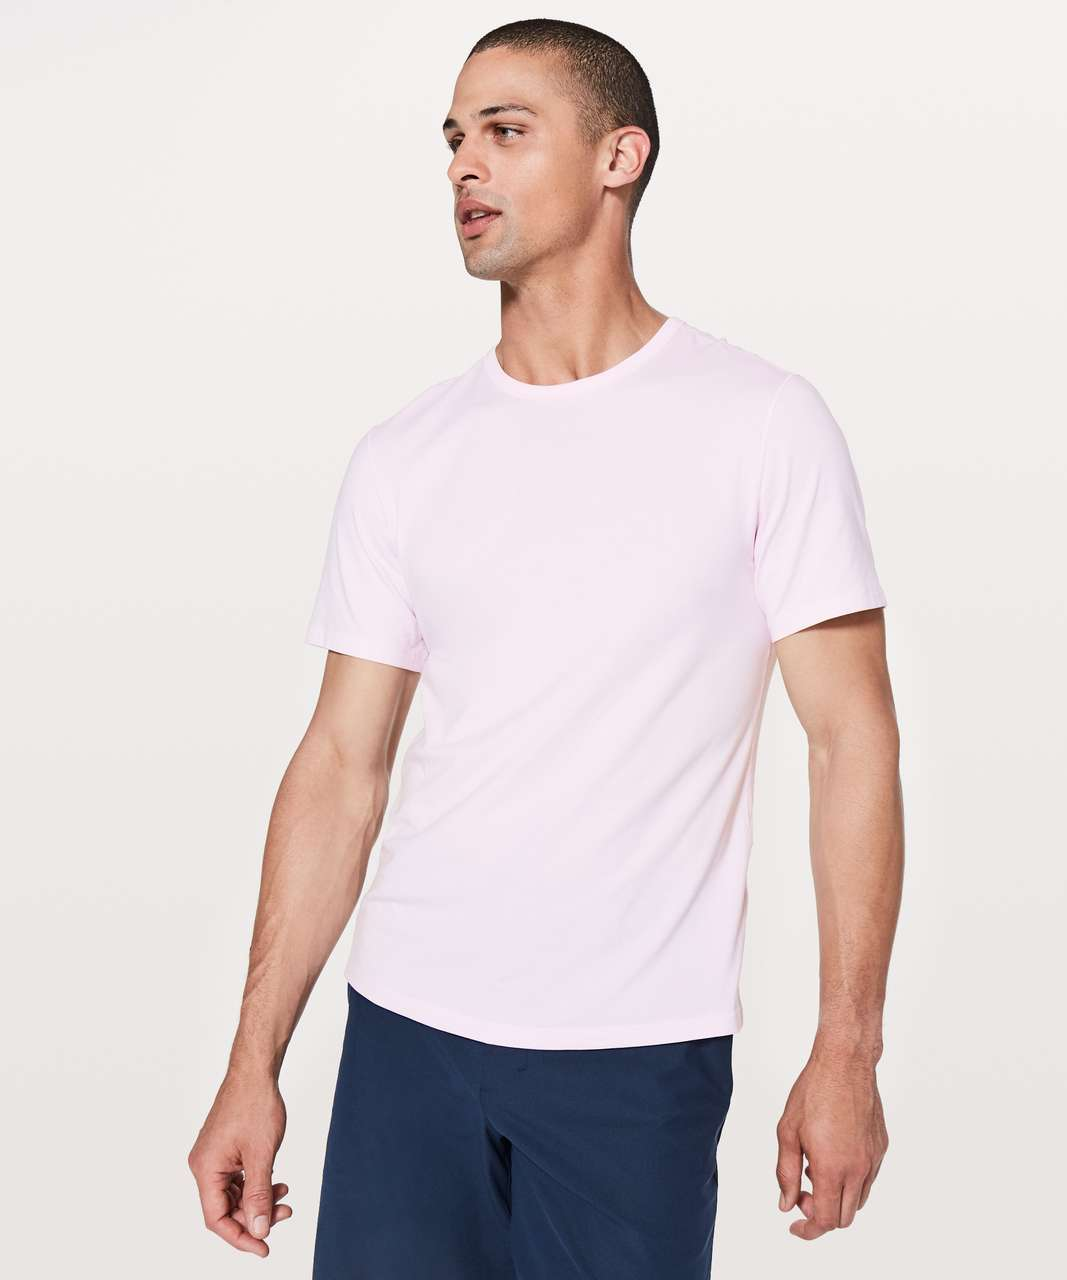 Lululemon 5 Year Basic Tee *Updated Fit - Flutterby Pink